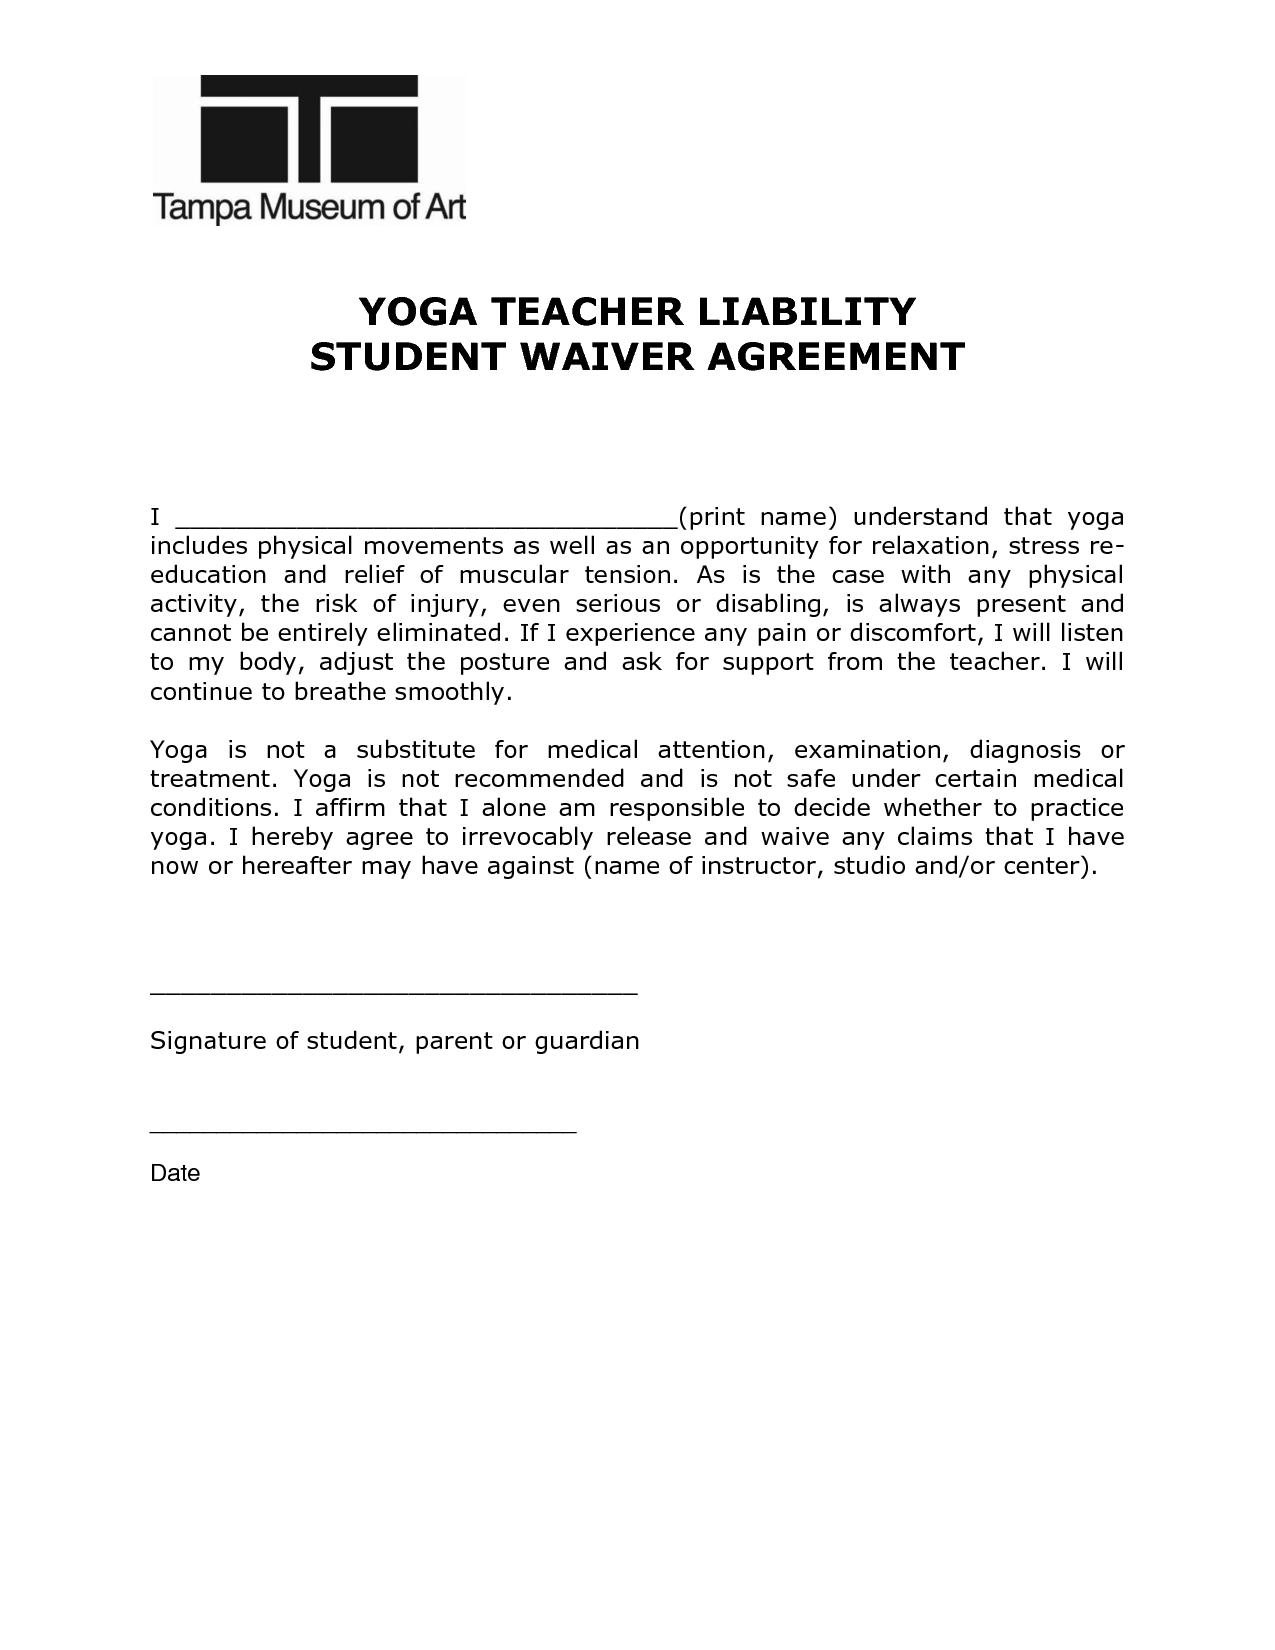 Teacher Student Agreement Form Pdf Pictures Yoga Education Yoga Yoga Life